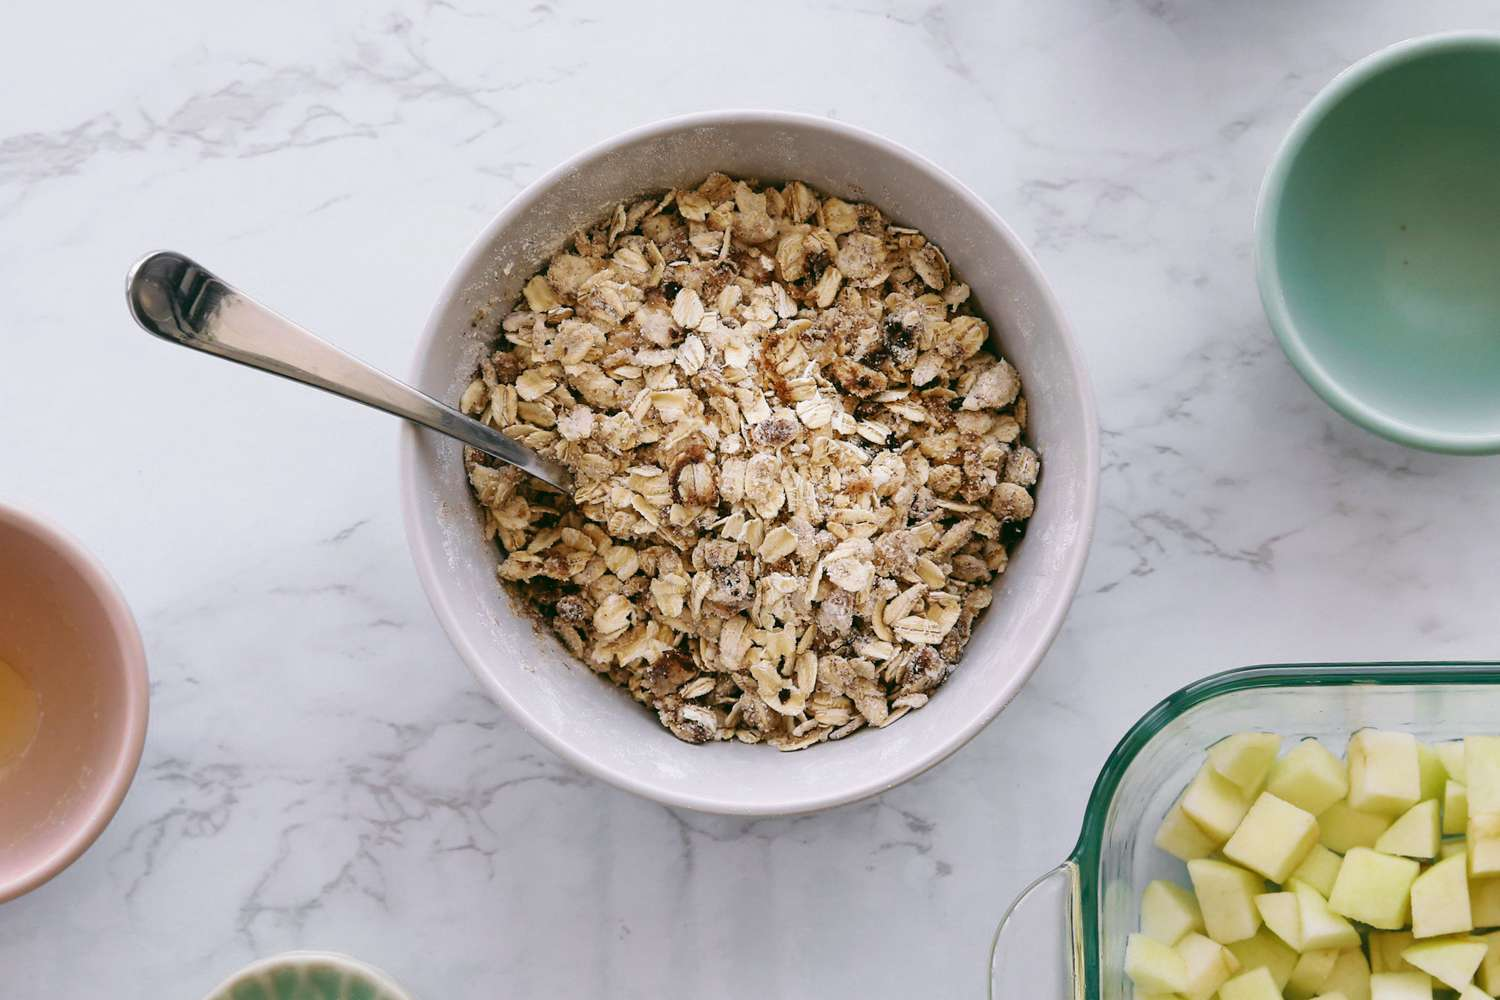 crumble topping mixed in a bowl